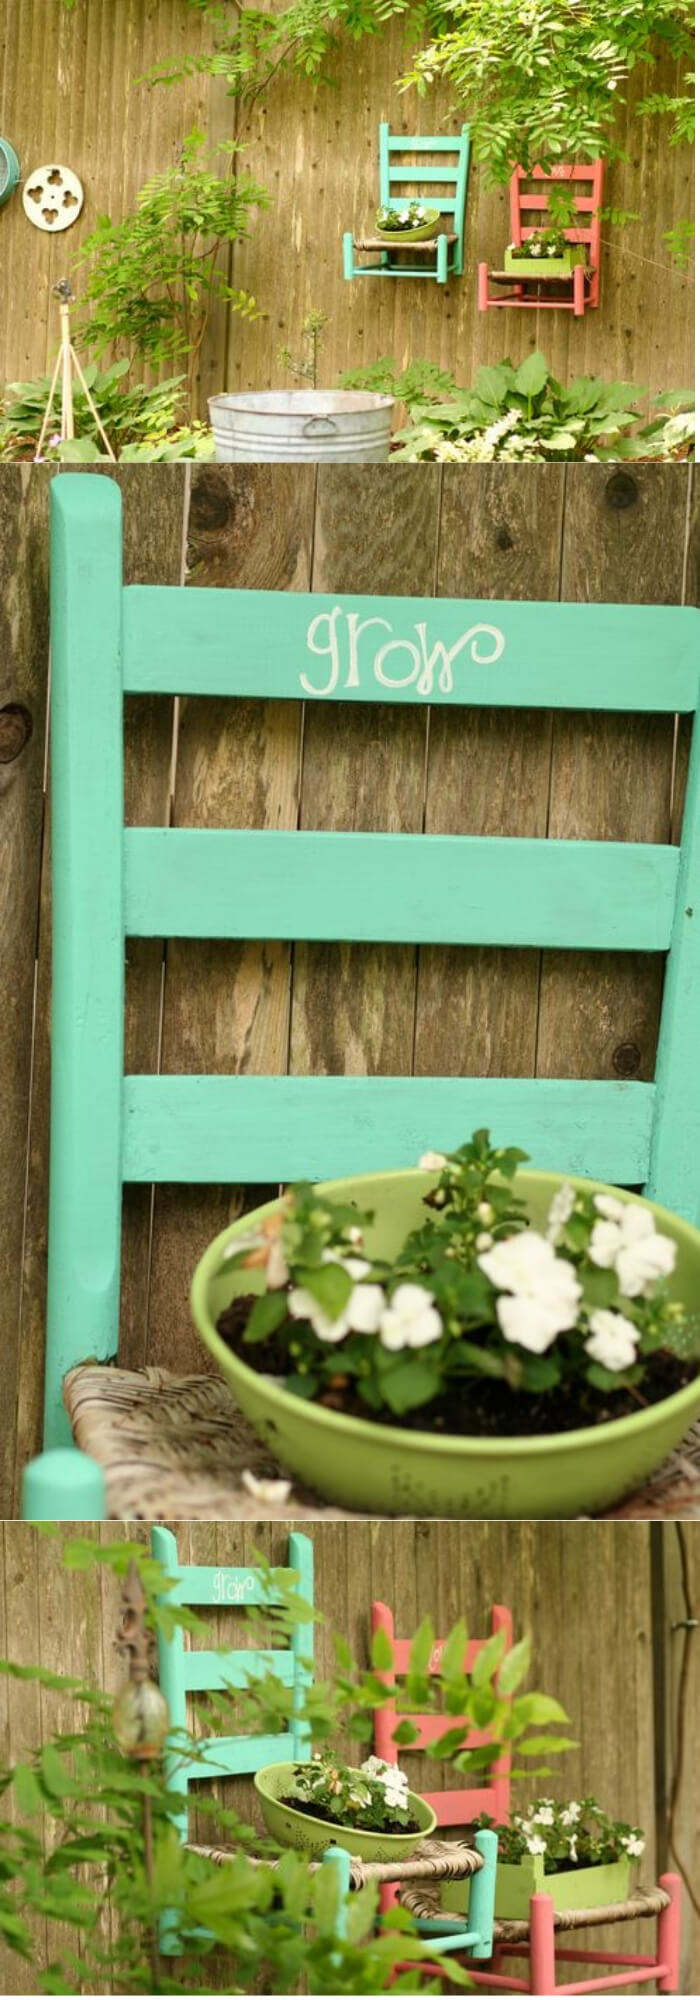 Hanging Chair Planter | Creative Upcycled DIY Chair Planter Ideas For Your Garden